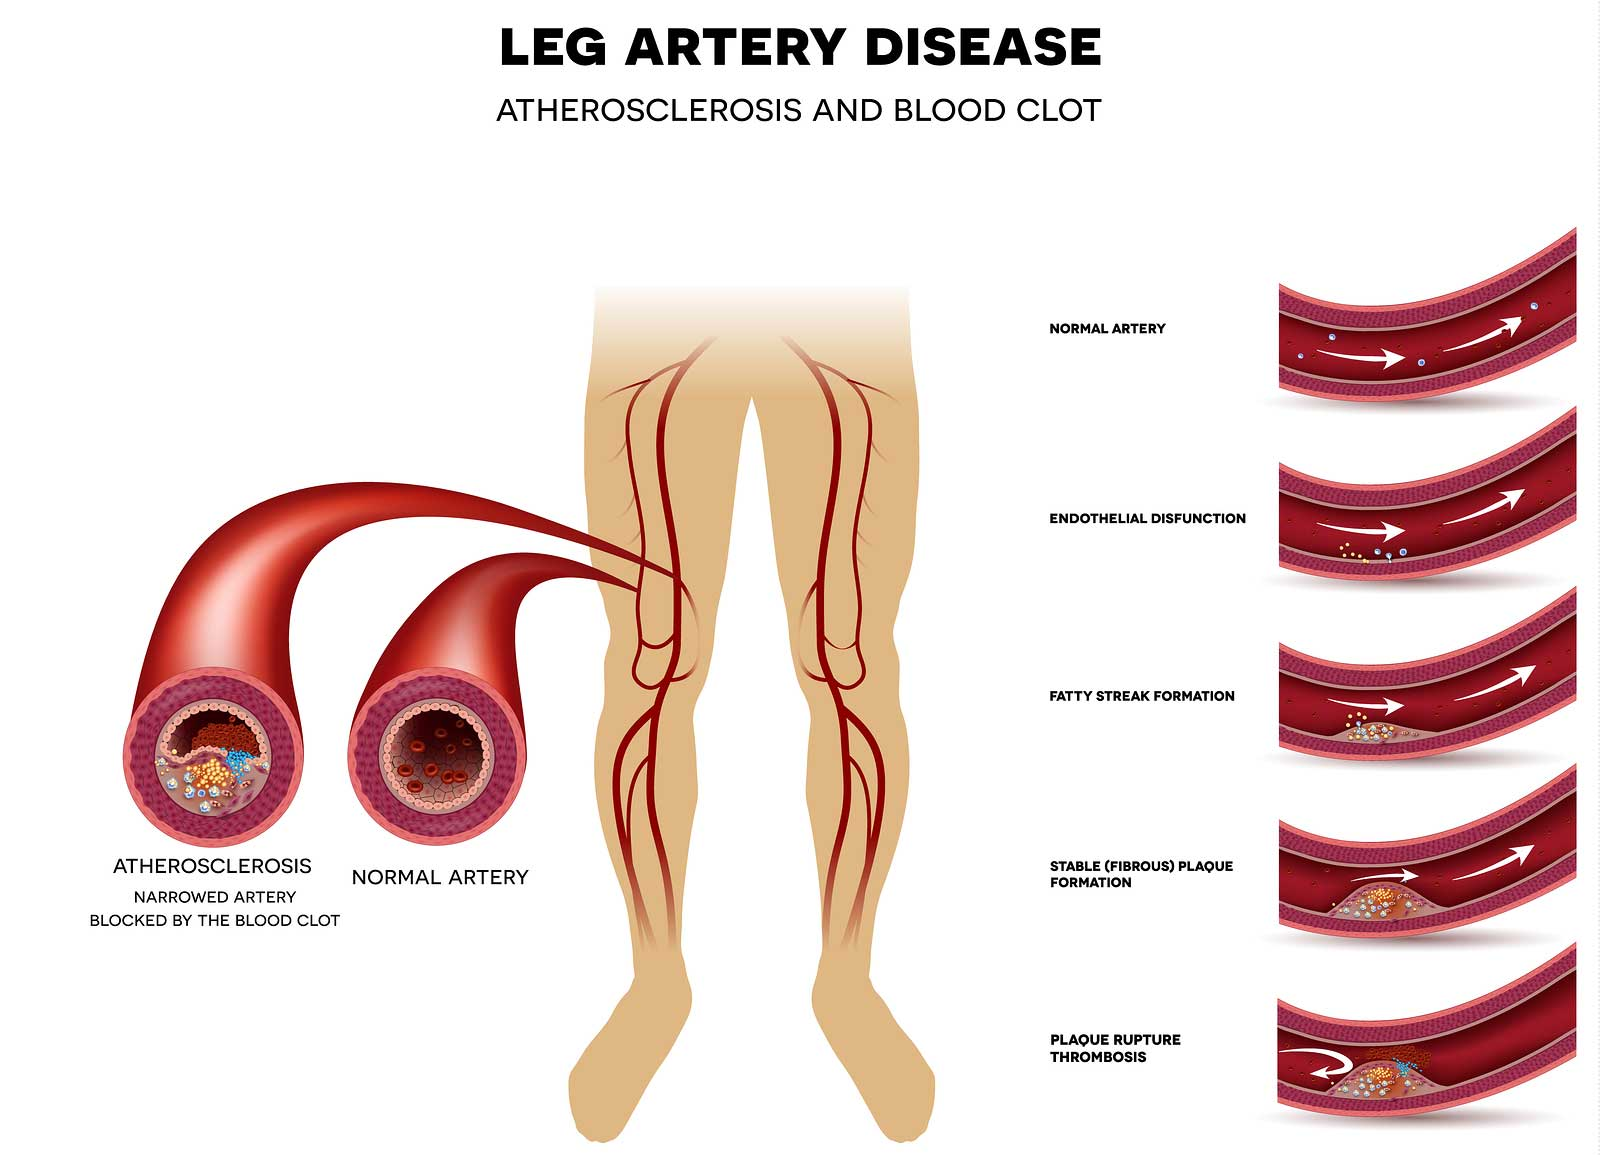 Discussion on this topic: How to Treat Peripheral Artery Disease, how-to-treat-peripheral-artery-disease/